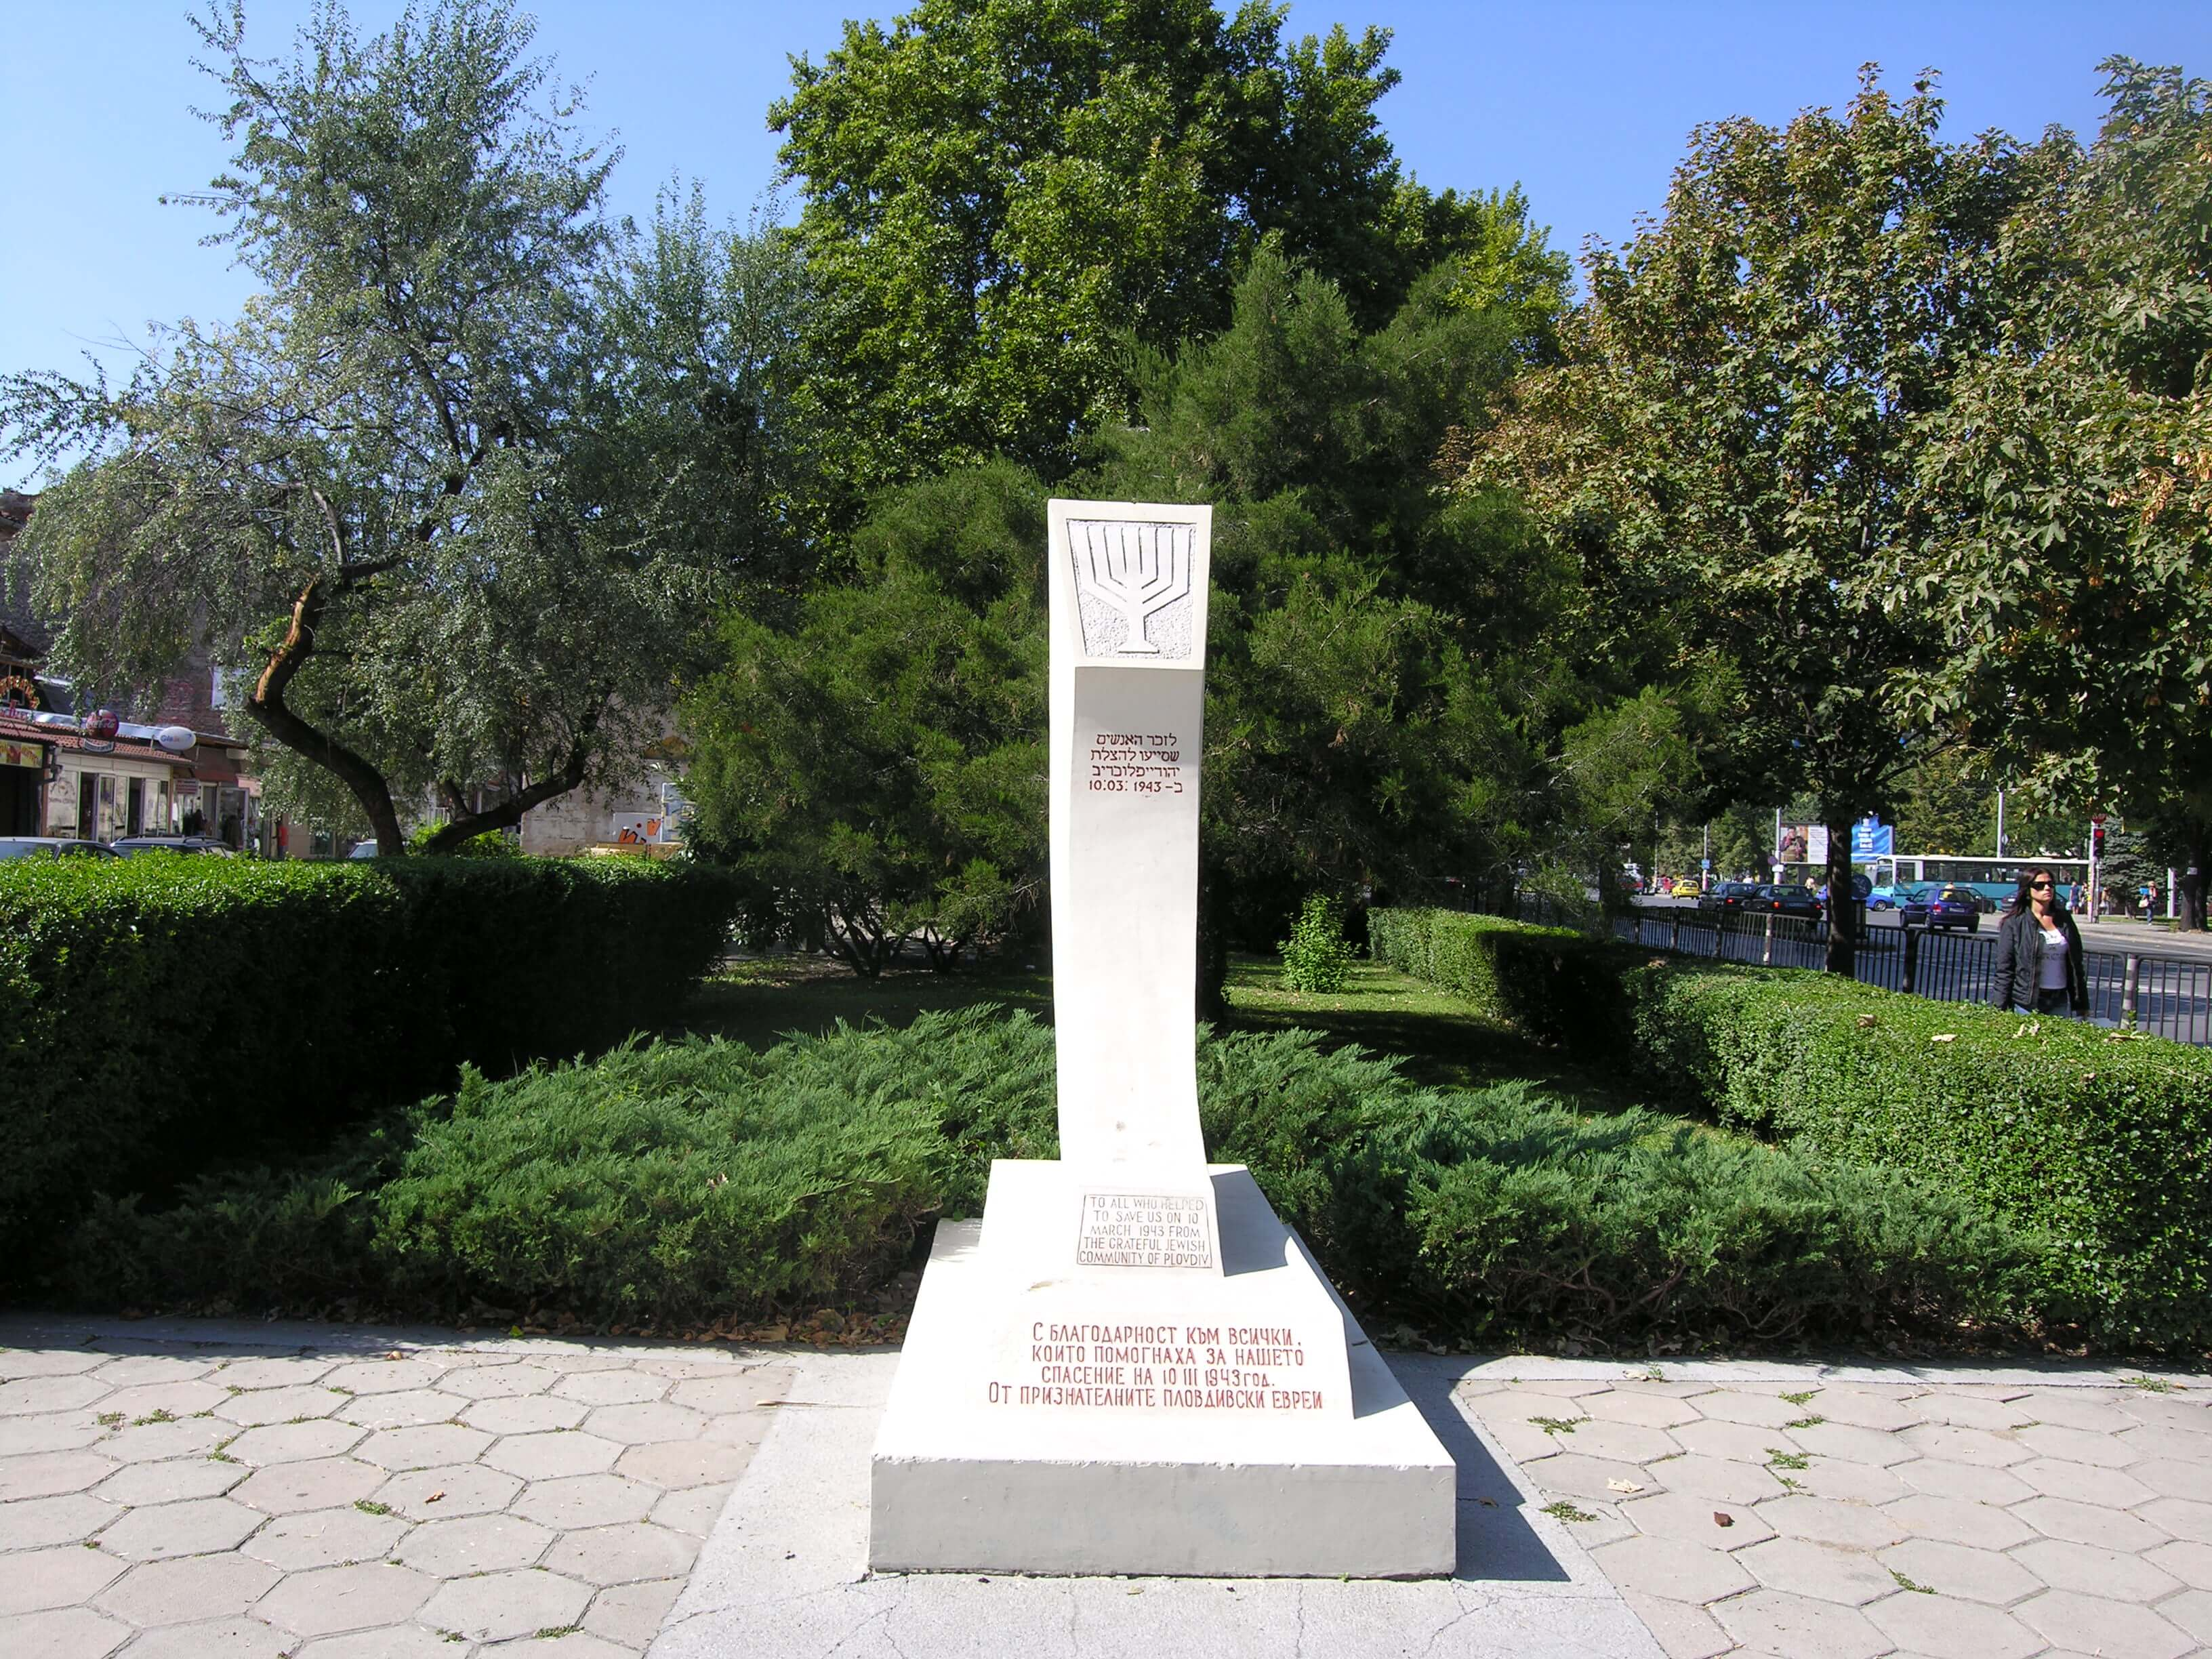 Monument that commemorates Plovdiv saving its Jewish population